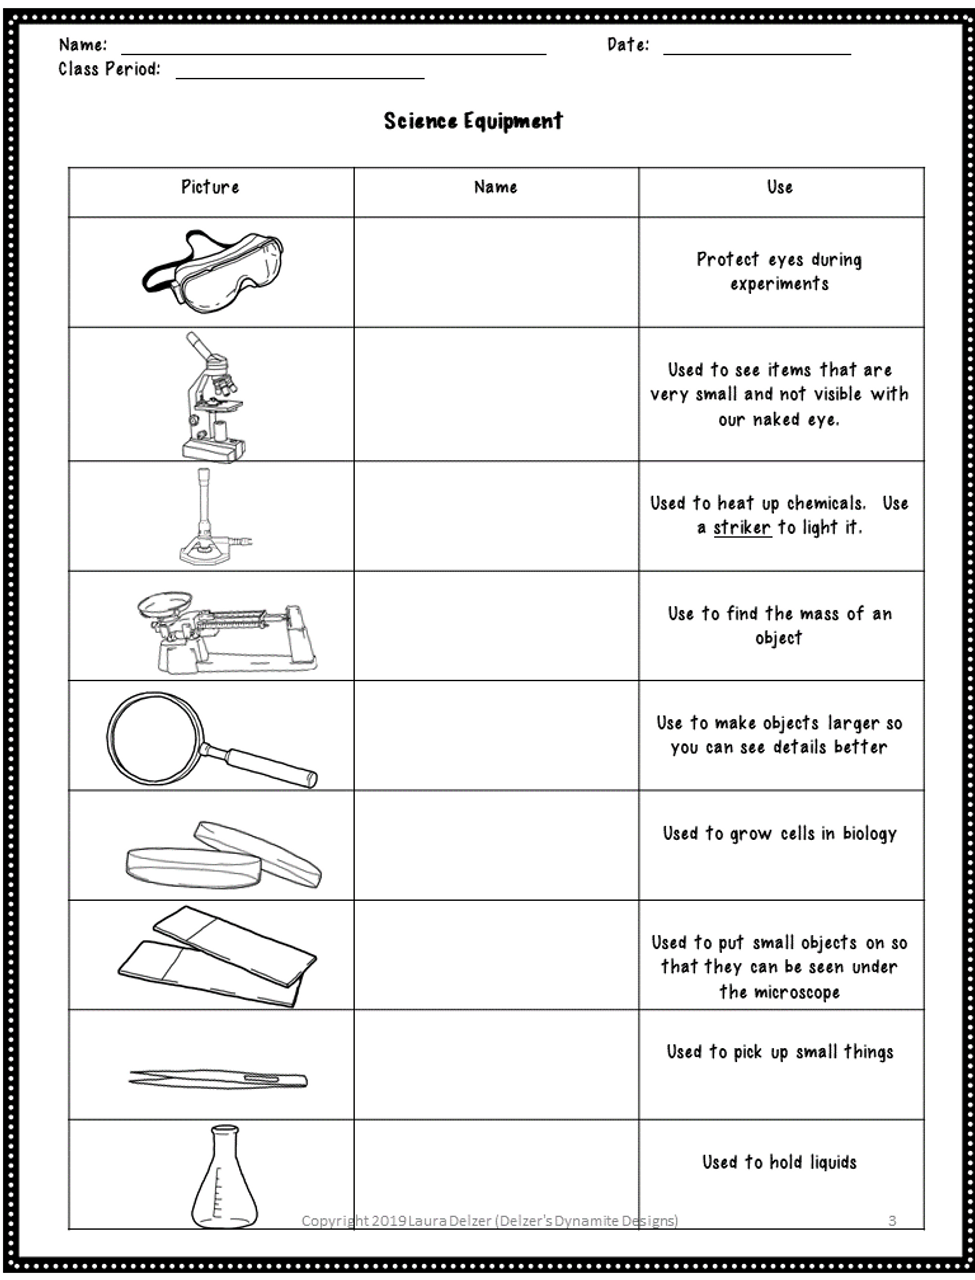 medium resolution of Lab Equipment Identification Worksheets. 36 items! - Amped Up Learning